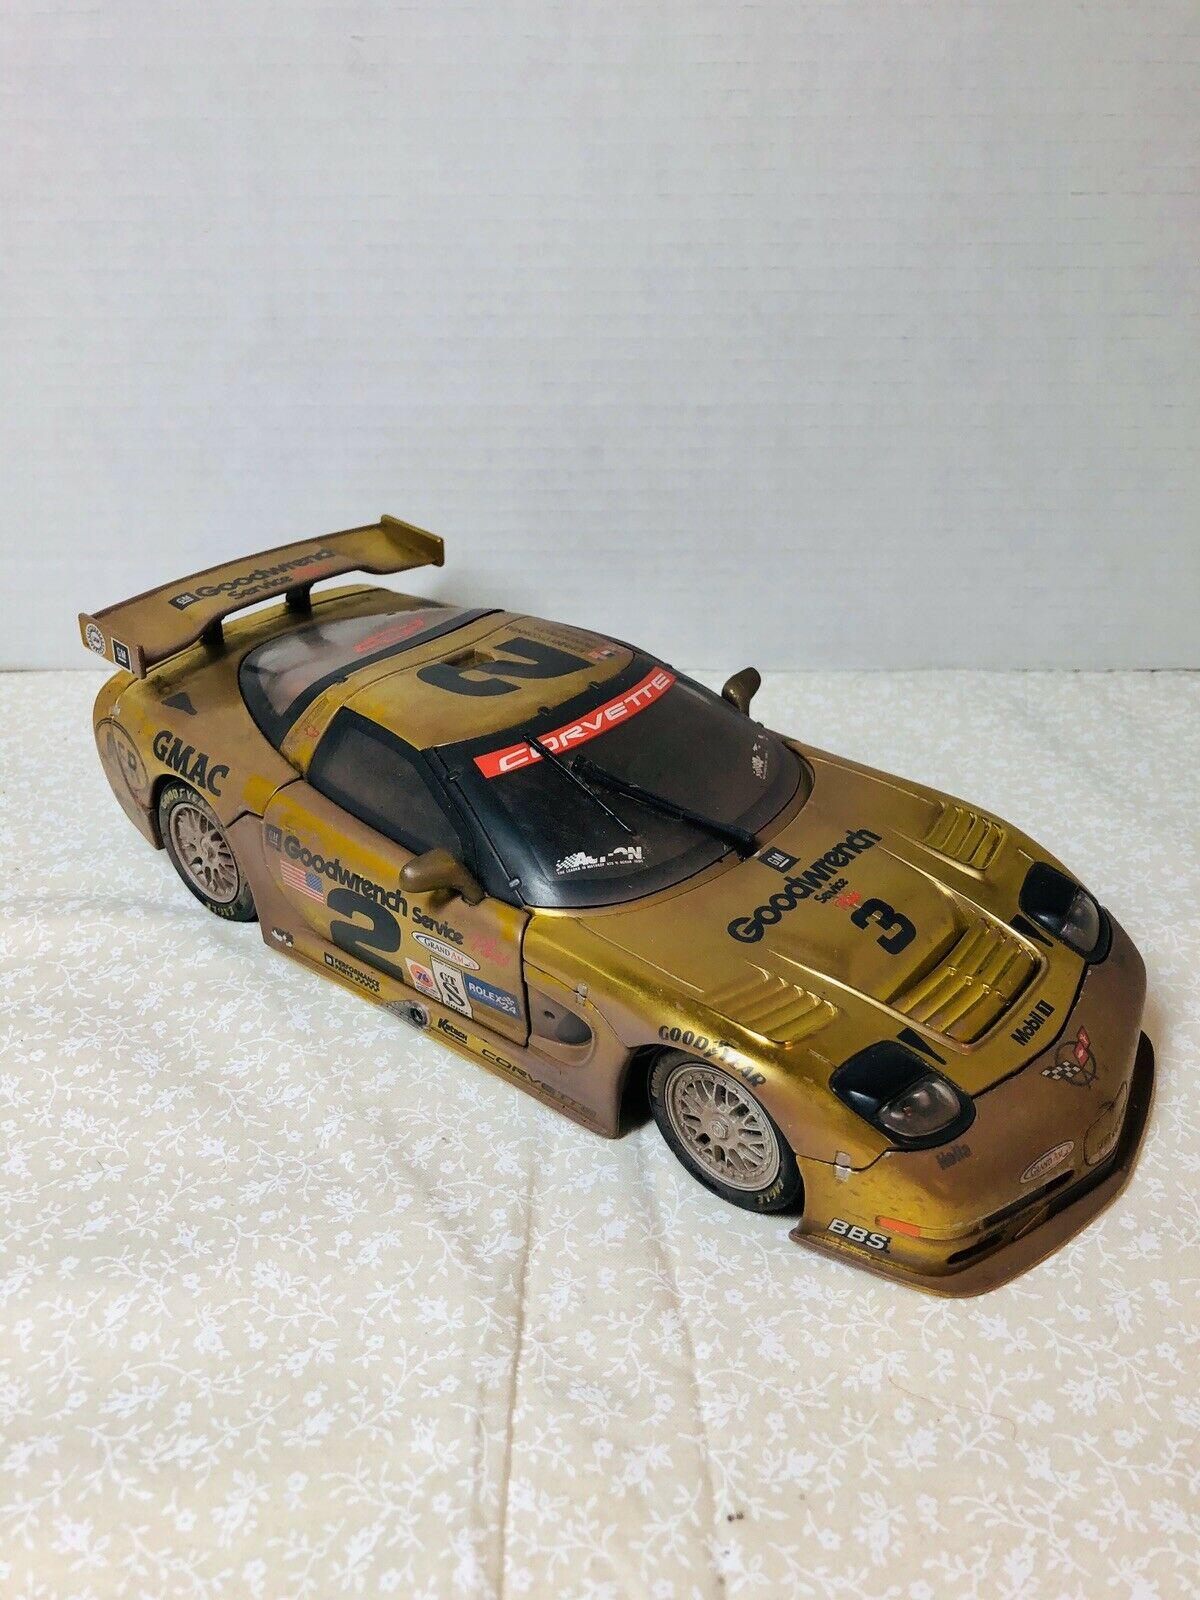 Action 2001 Chevy Corvette C5-R Farbechrome  2 Raced Version 1 18